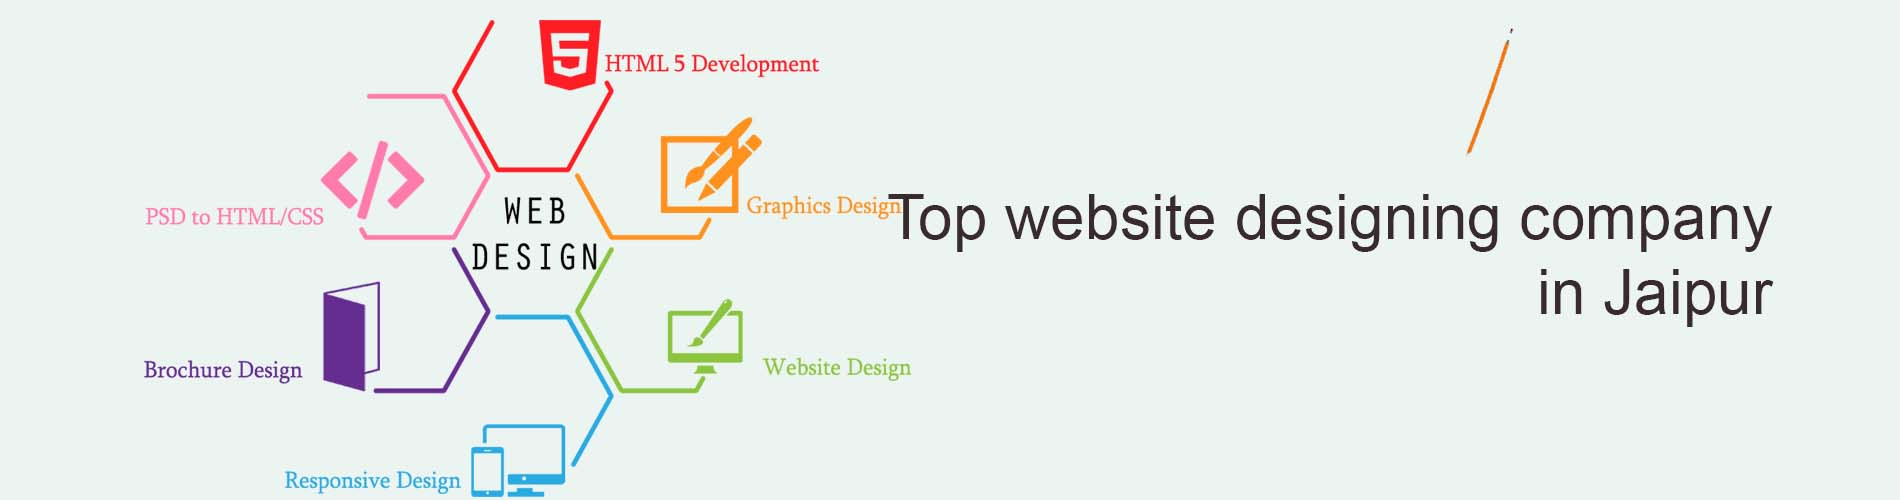 top website designing company in jaipur